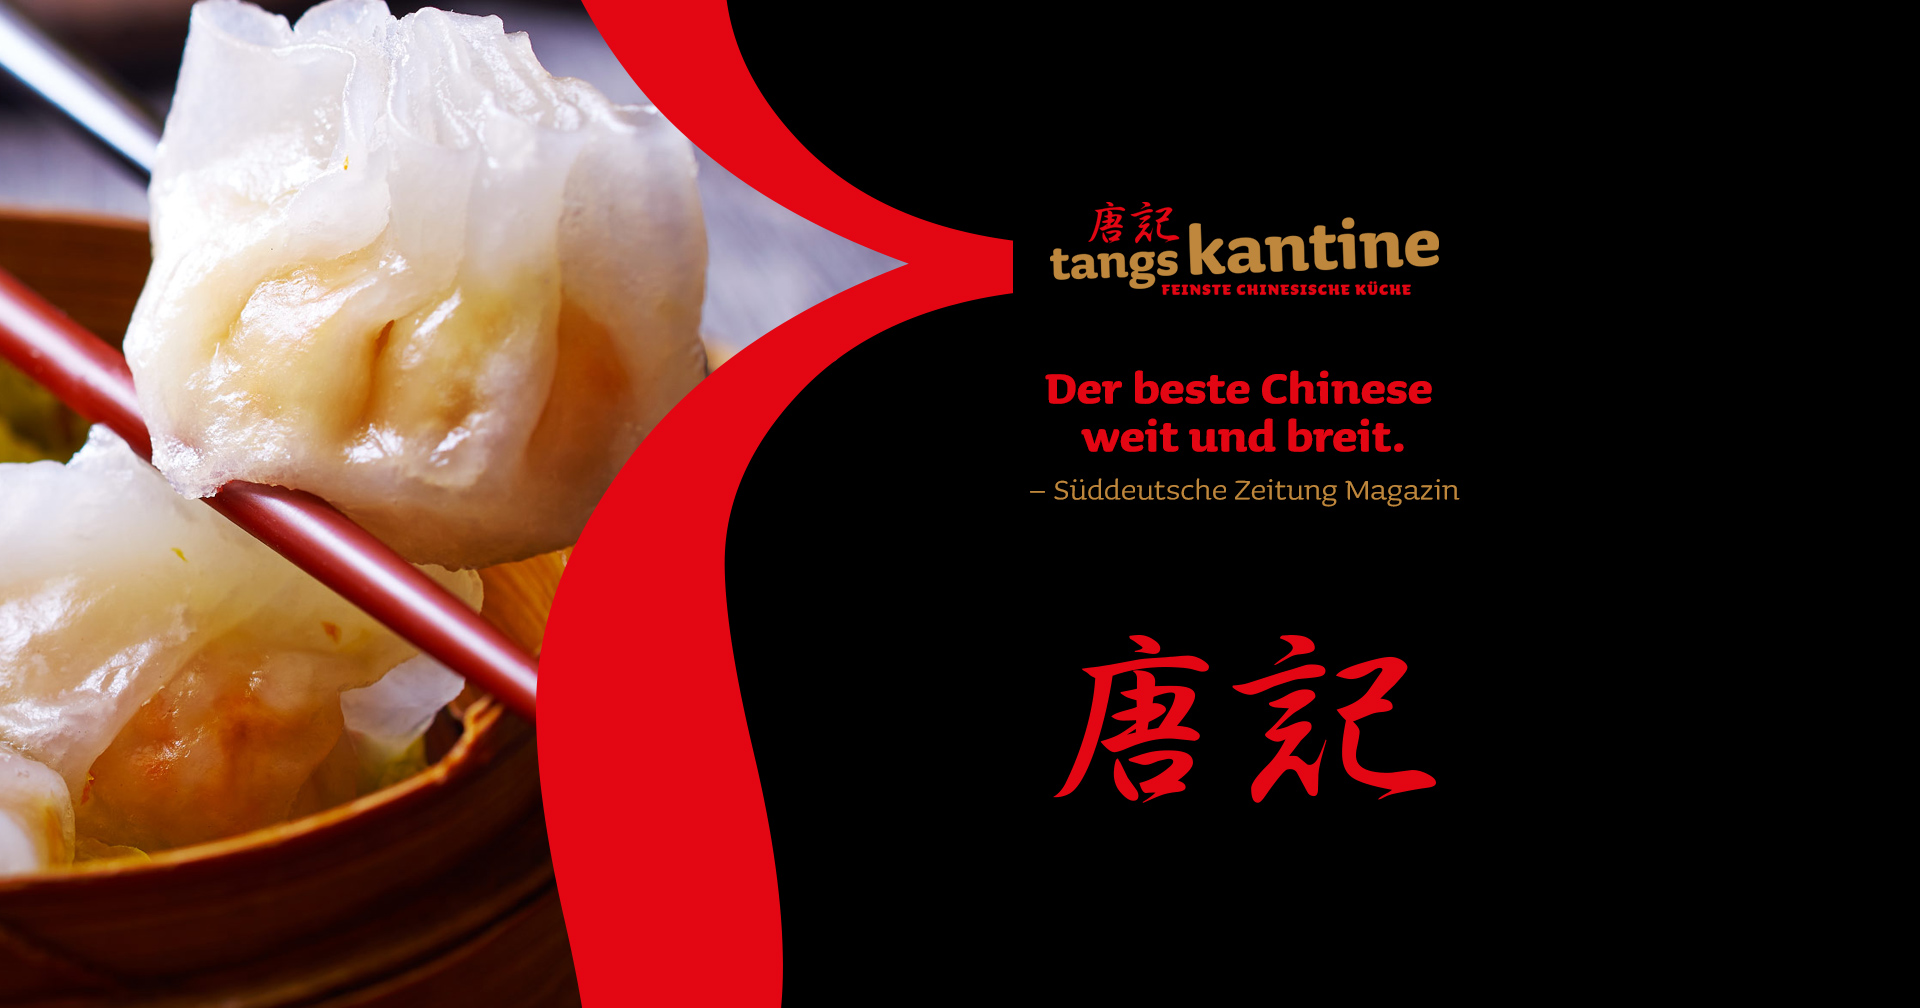 tangs kantine • authentisches chinesisches Restaurant in Berlin ...